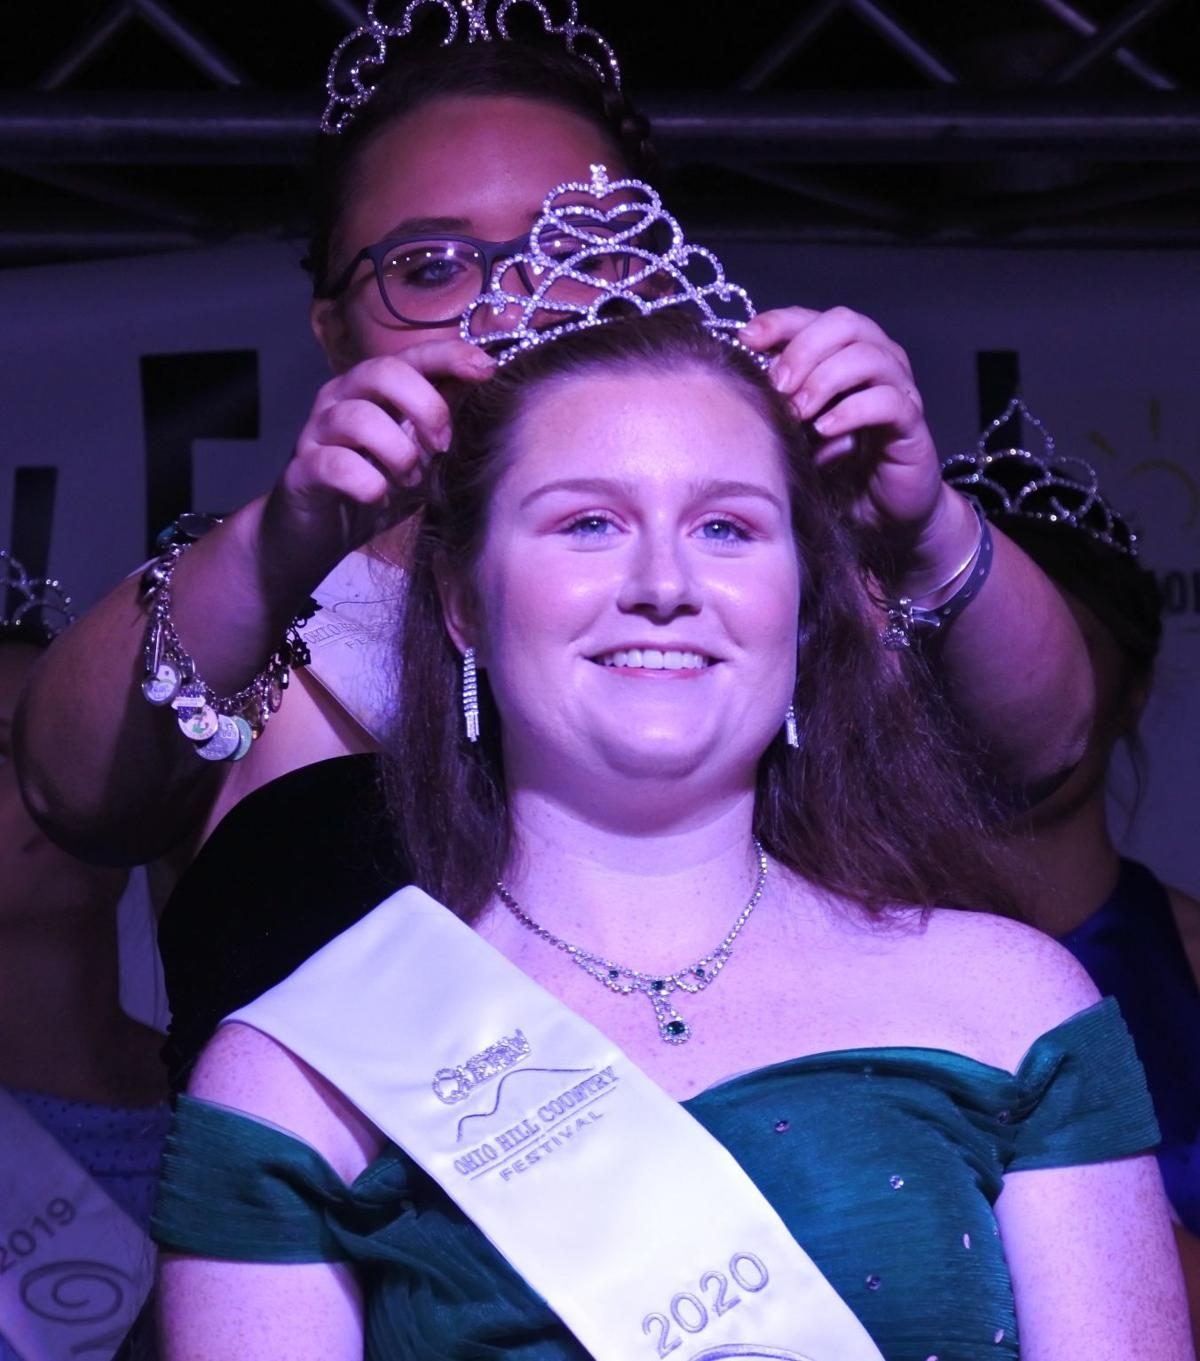 A new queen crowned